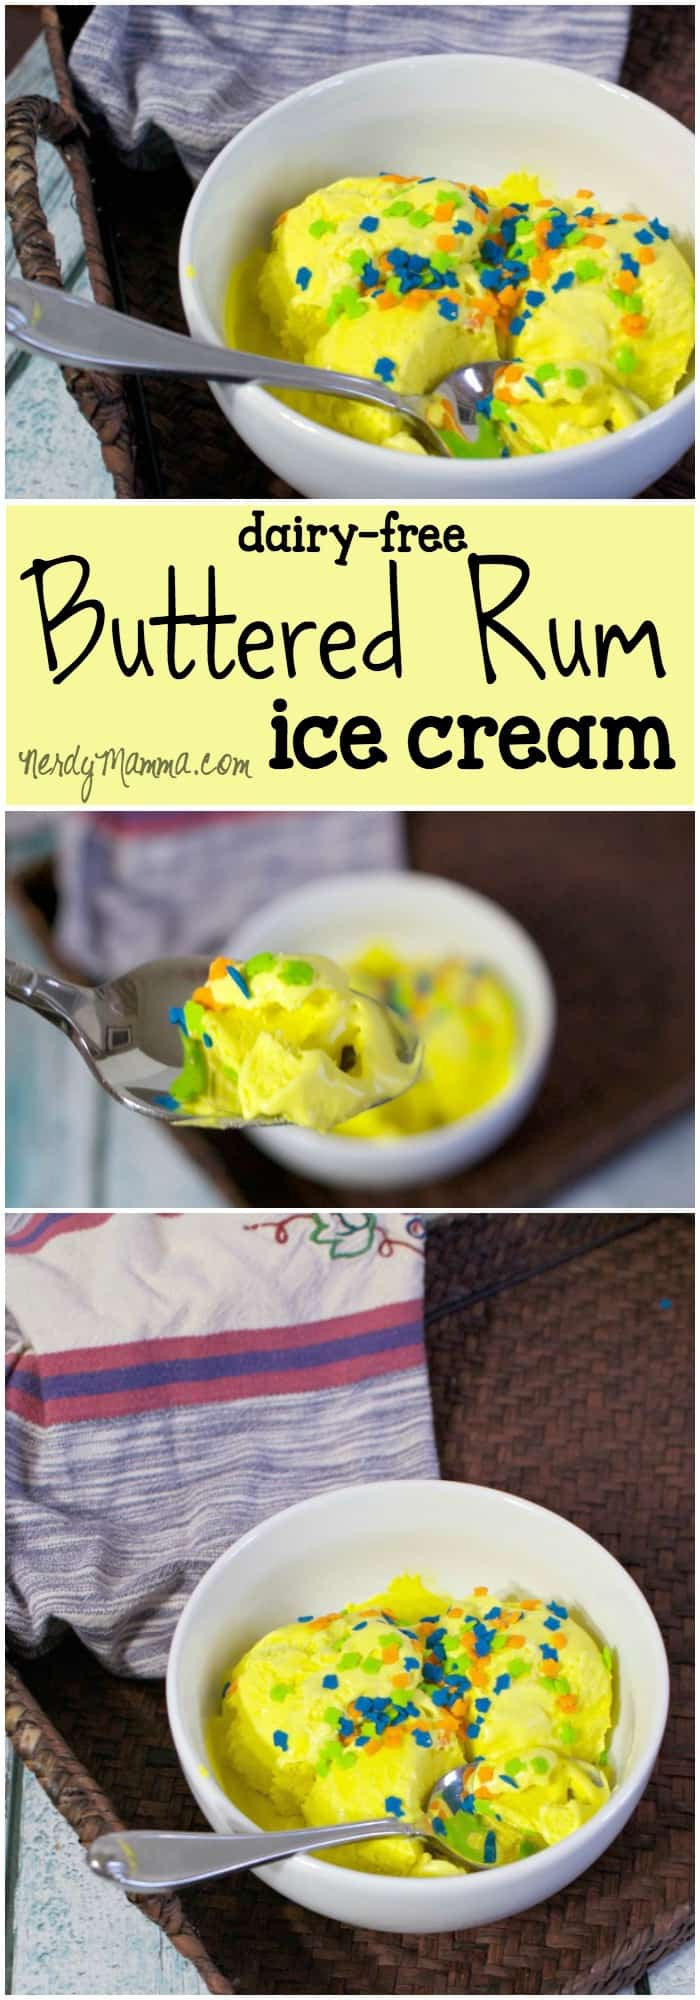 This recipe for buttered rum ice cream is the absolute best. I mean buttered rum. Yummy!